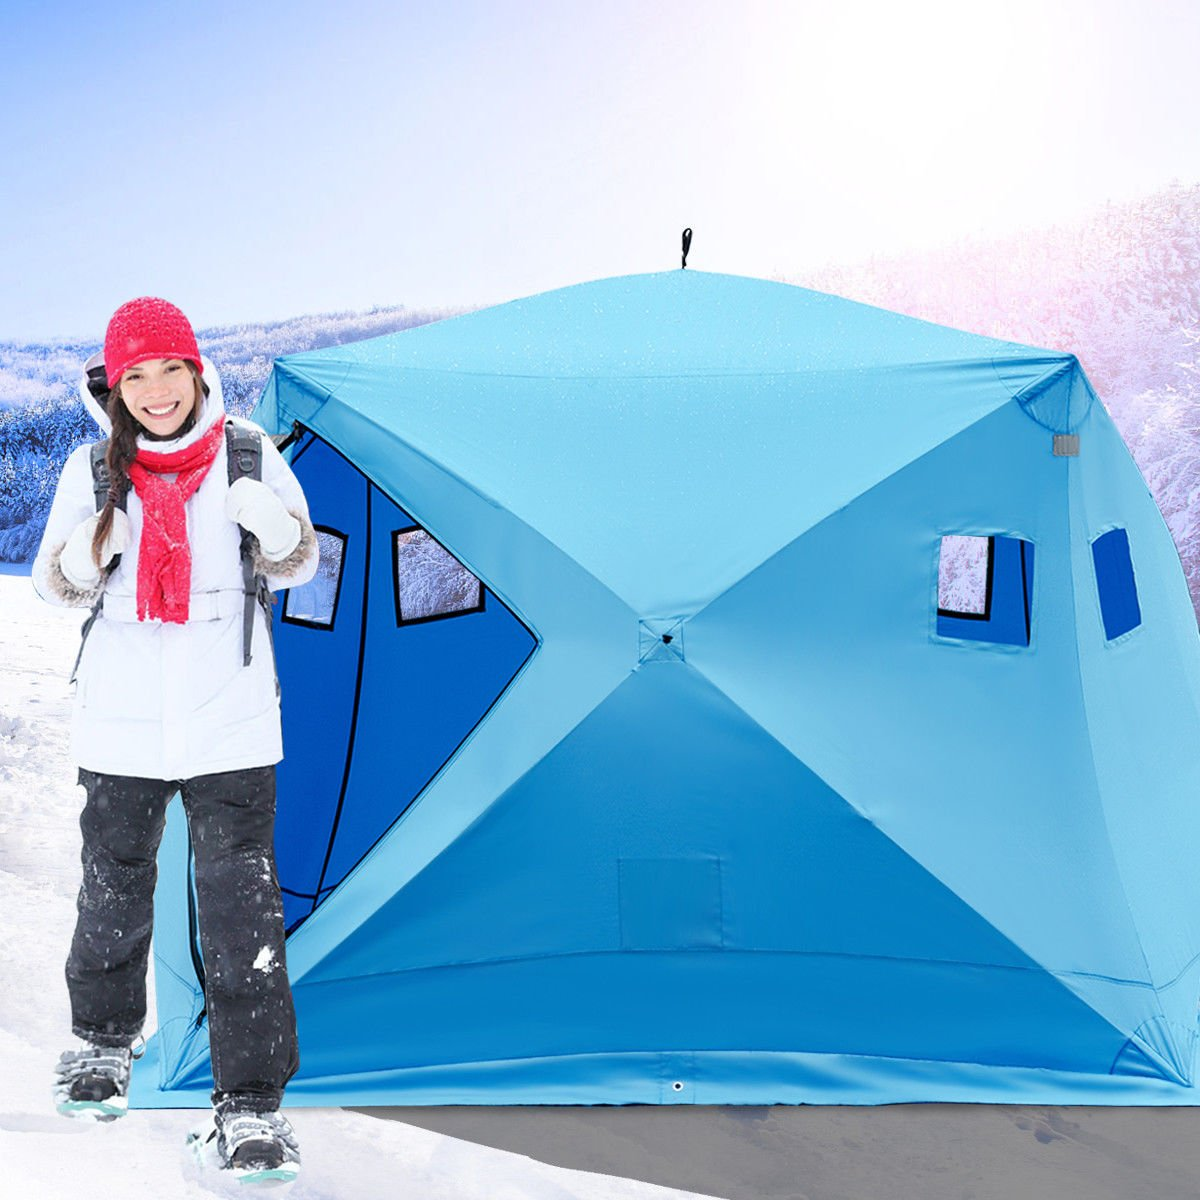 Photo of woman near ice fishing shelter. Best Flip Over Ice Fishing Shelter Reviews